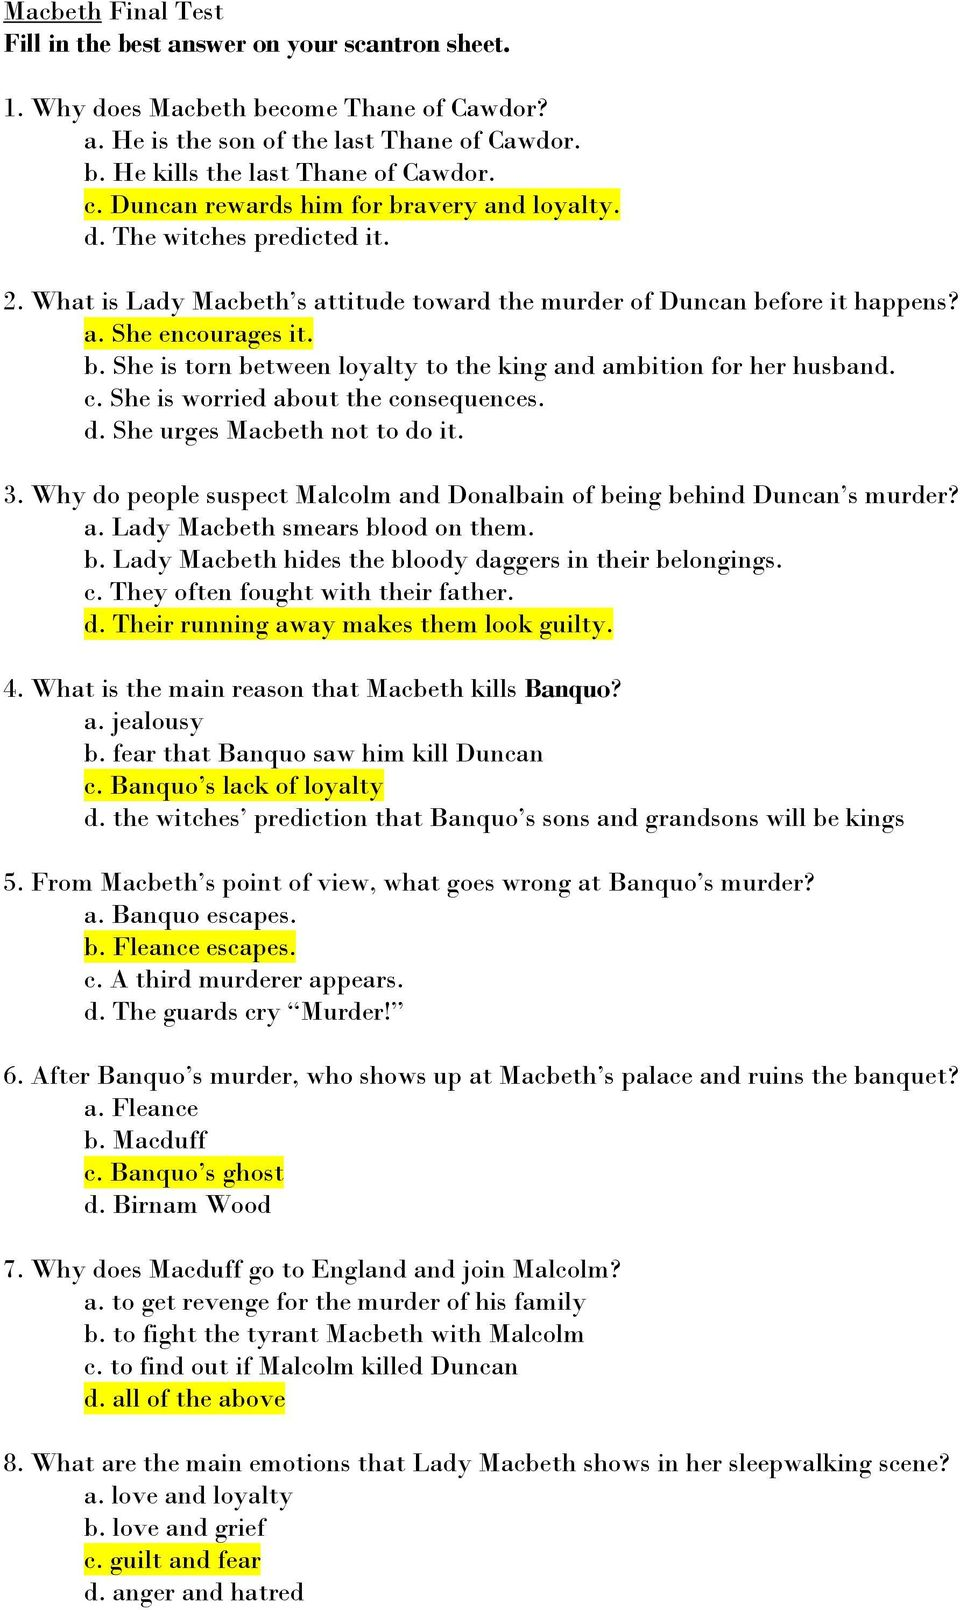 What does macbeth learn about macduff